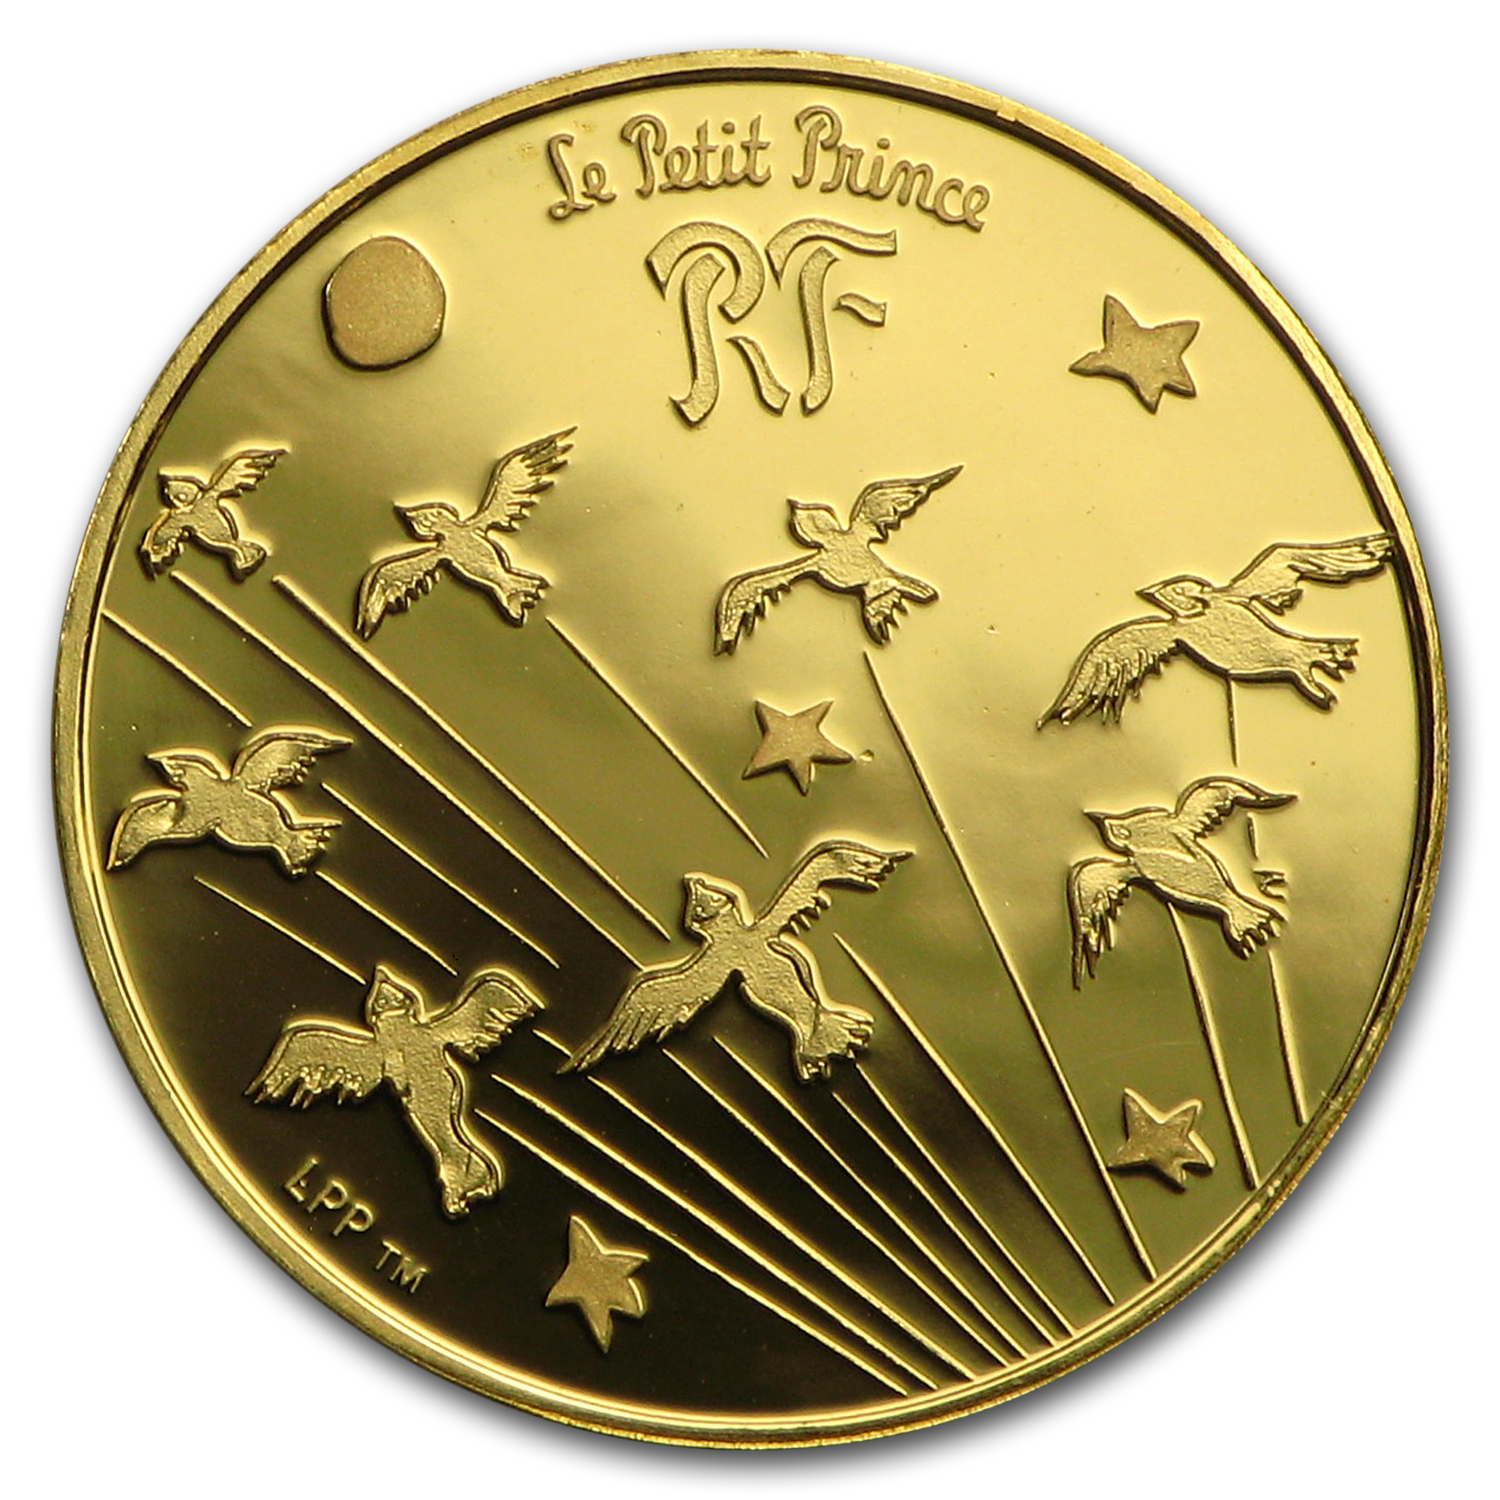 2015 France 1/25 oz Proof Gold €5 The Little Prince